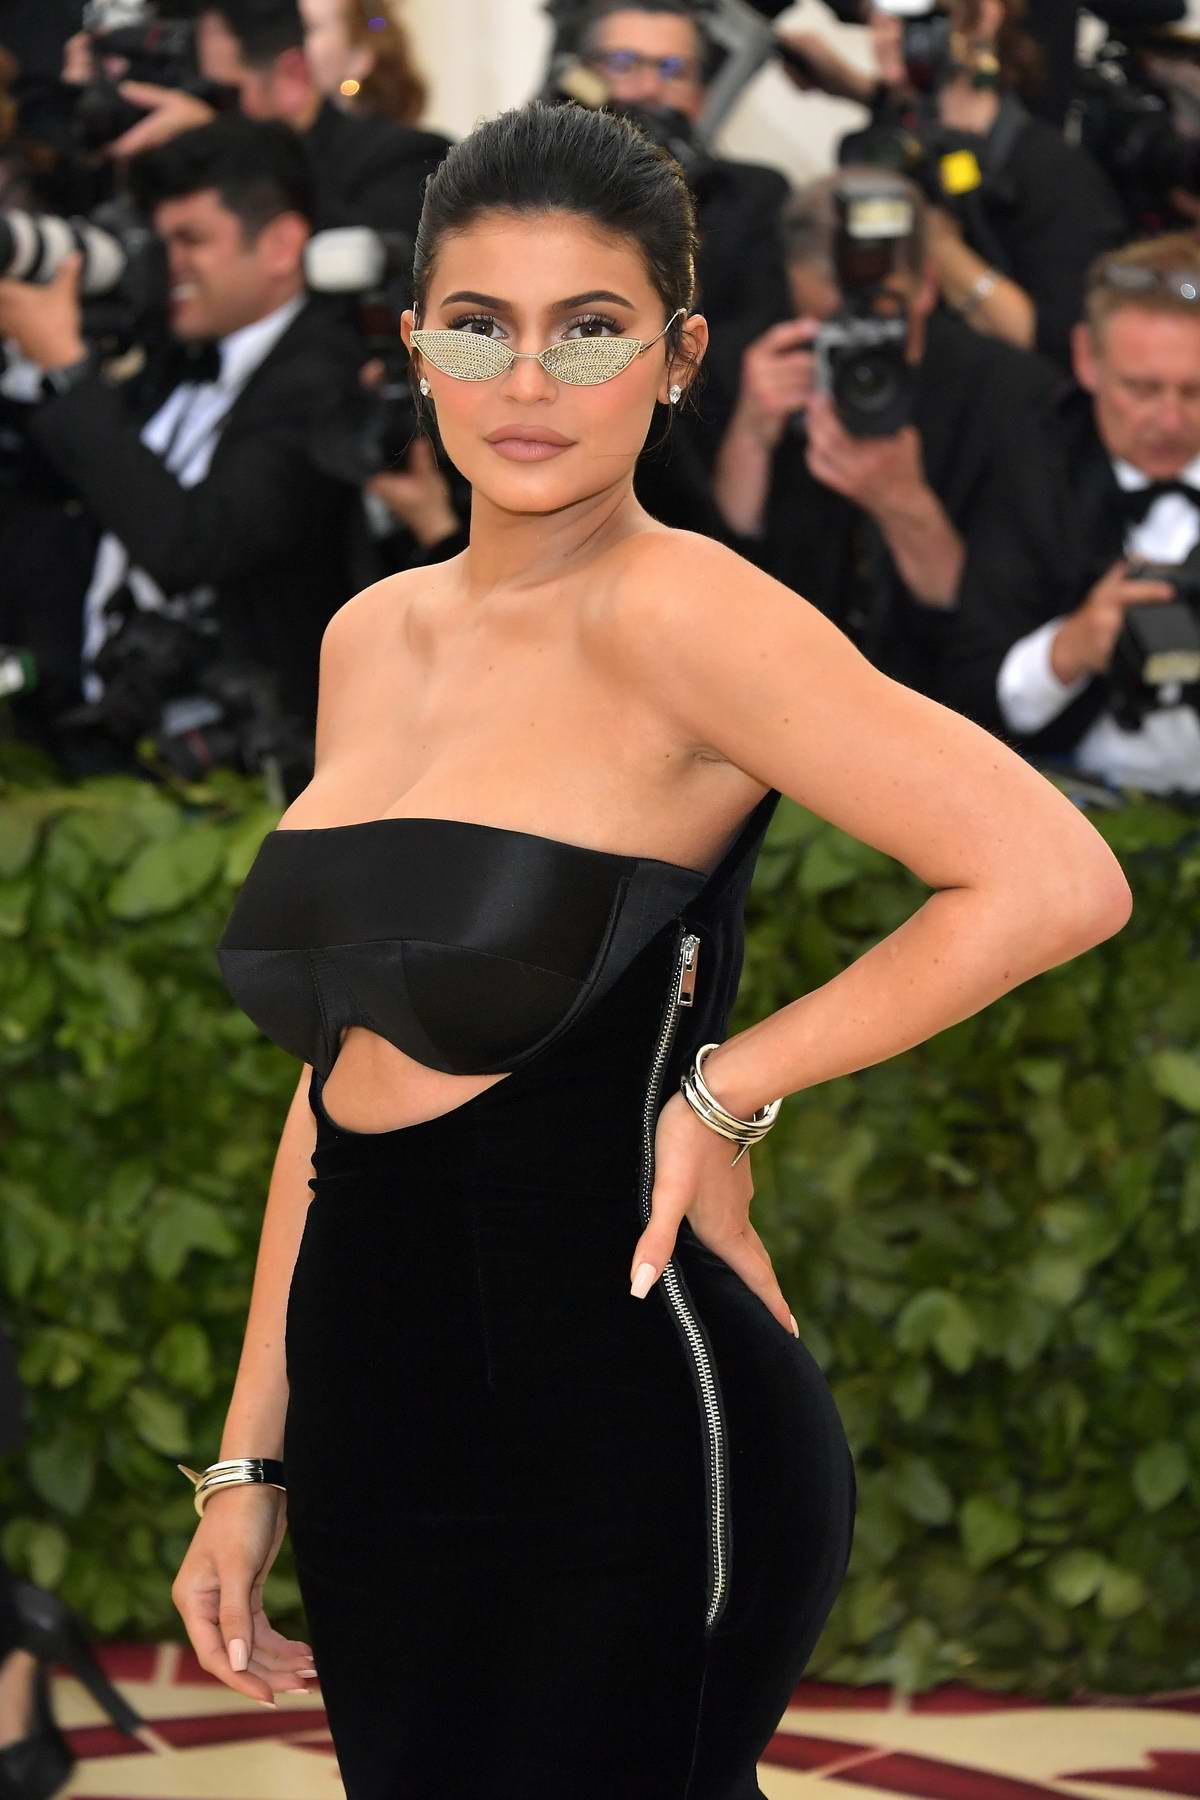 Kylie Jenner attends The Costume Institute Benefit Gala (MET Gala 2018) at Metropolitan Museum of Art in New York City